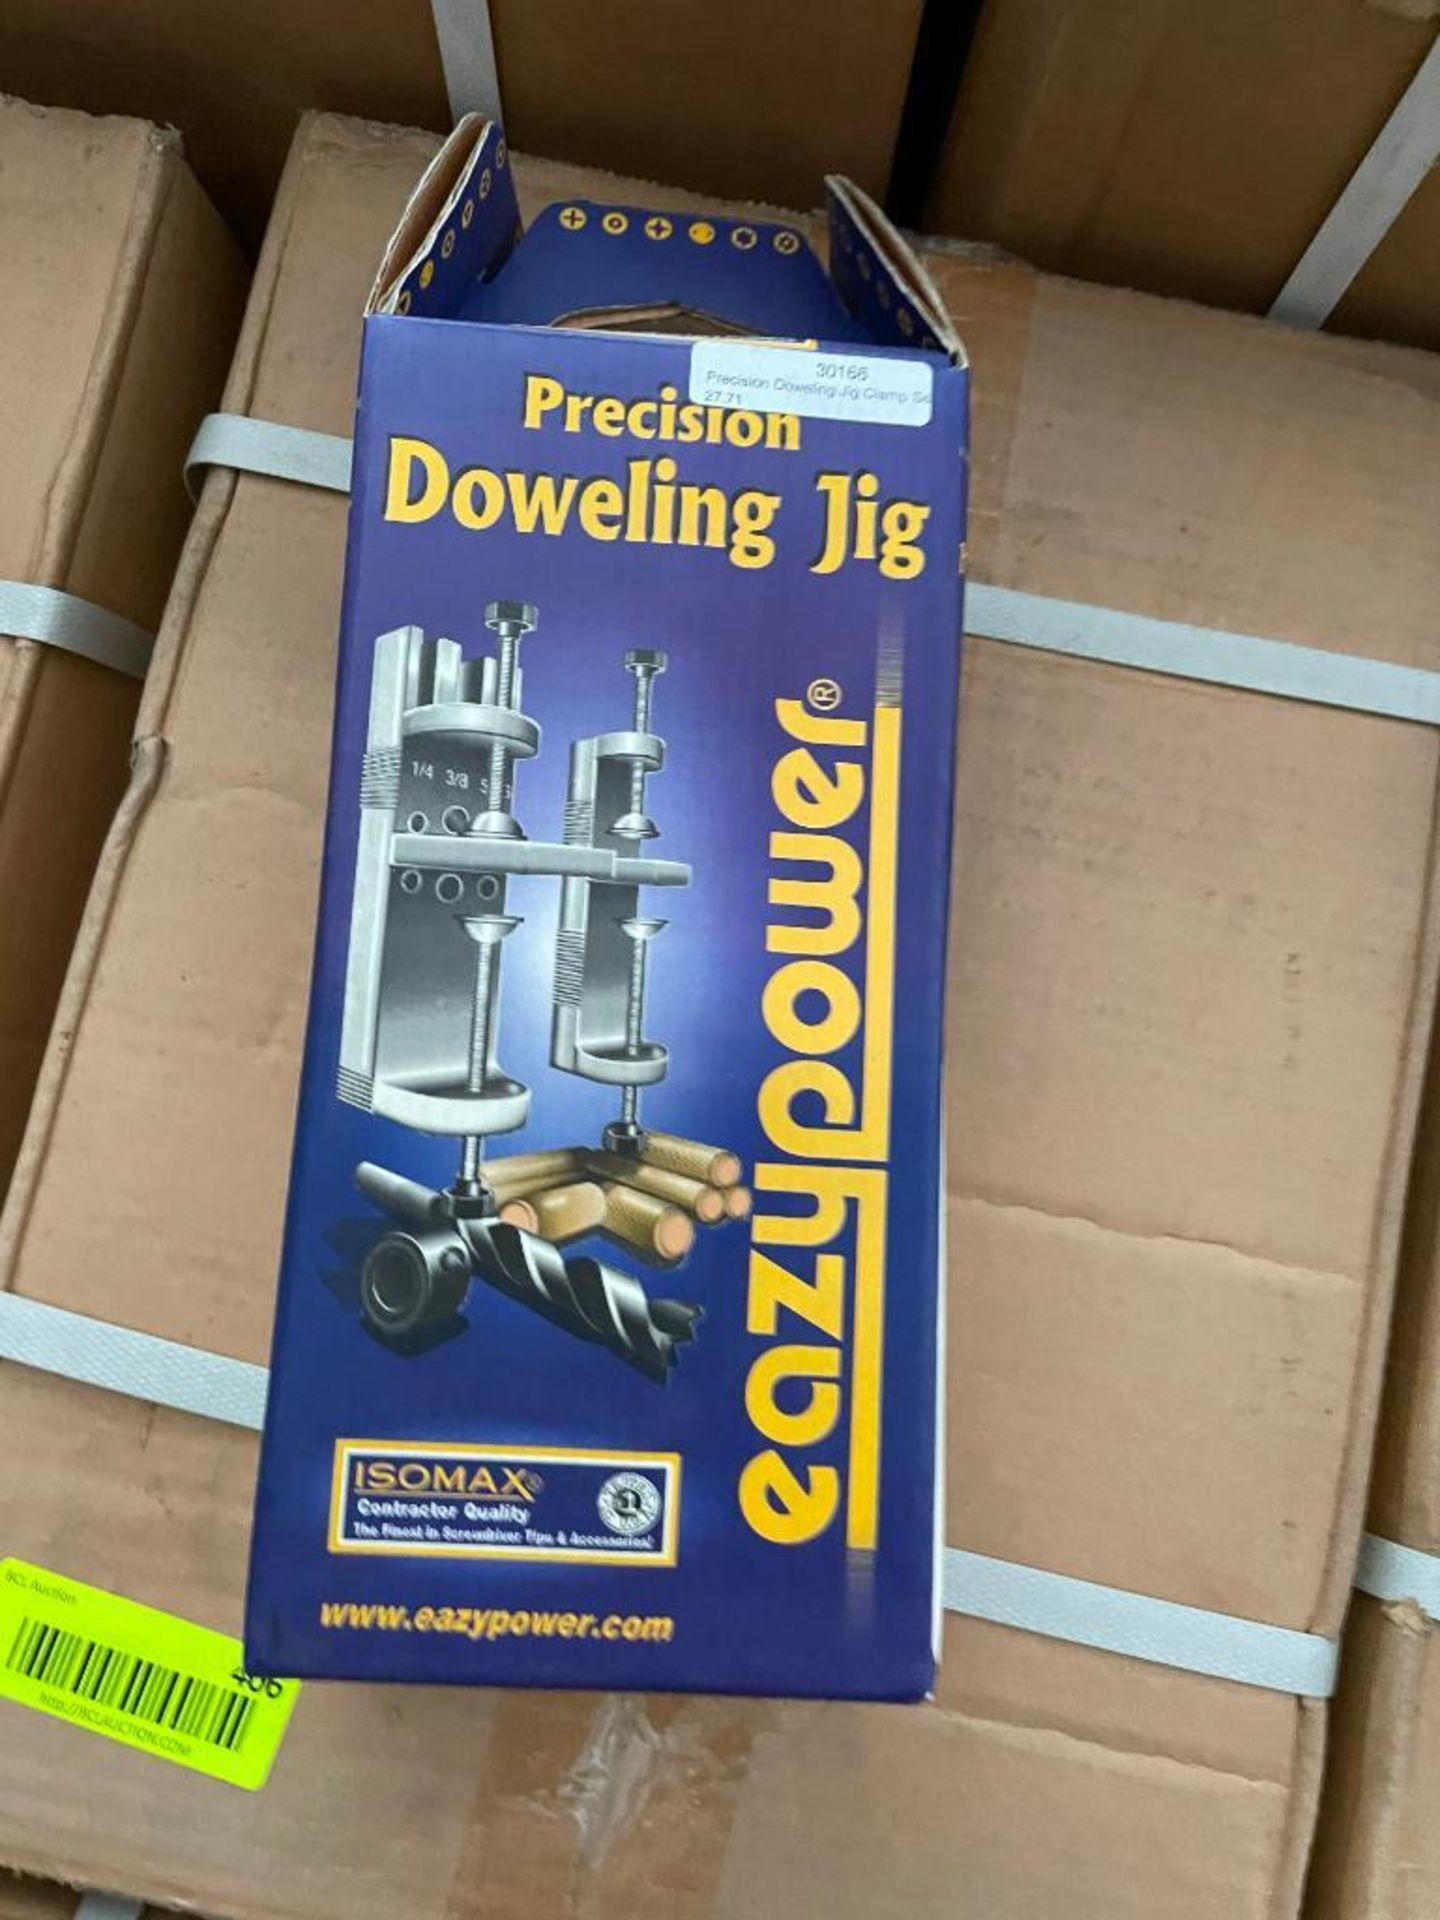 (26) PRECISION DOWELING JIG CLAMP PINS SET BRAND/MODEL EAZYPOWER ADDITIONAL INFO TOTAL LOT RETAIL PR - Image 3 of 3